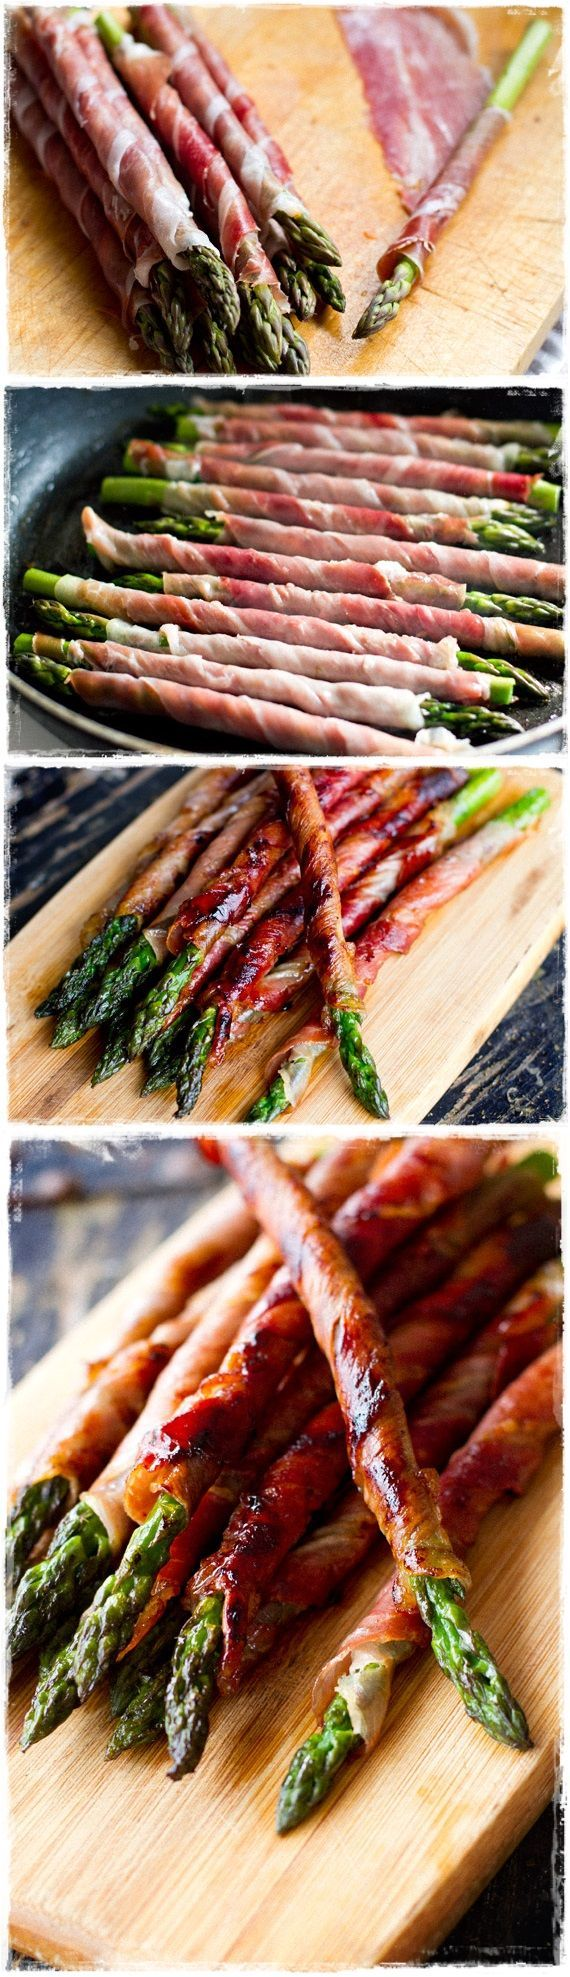 Prosciutto Wrapped Asparagus ~ This recipe will give you a great idea how to make some little fastidious eaters you have in your house enjoy veggies.